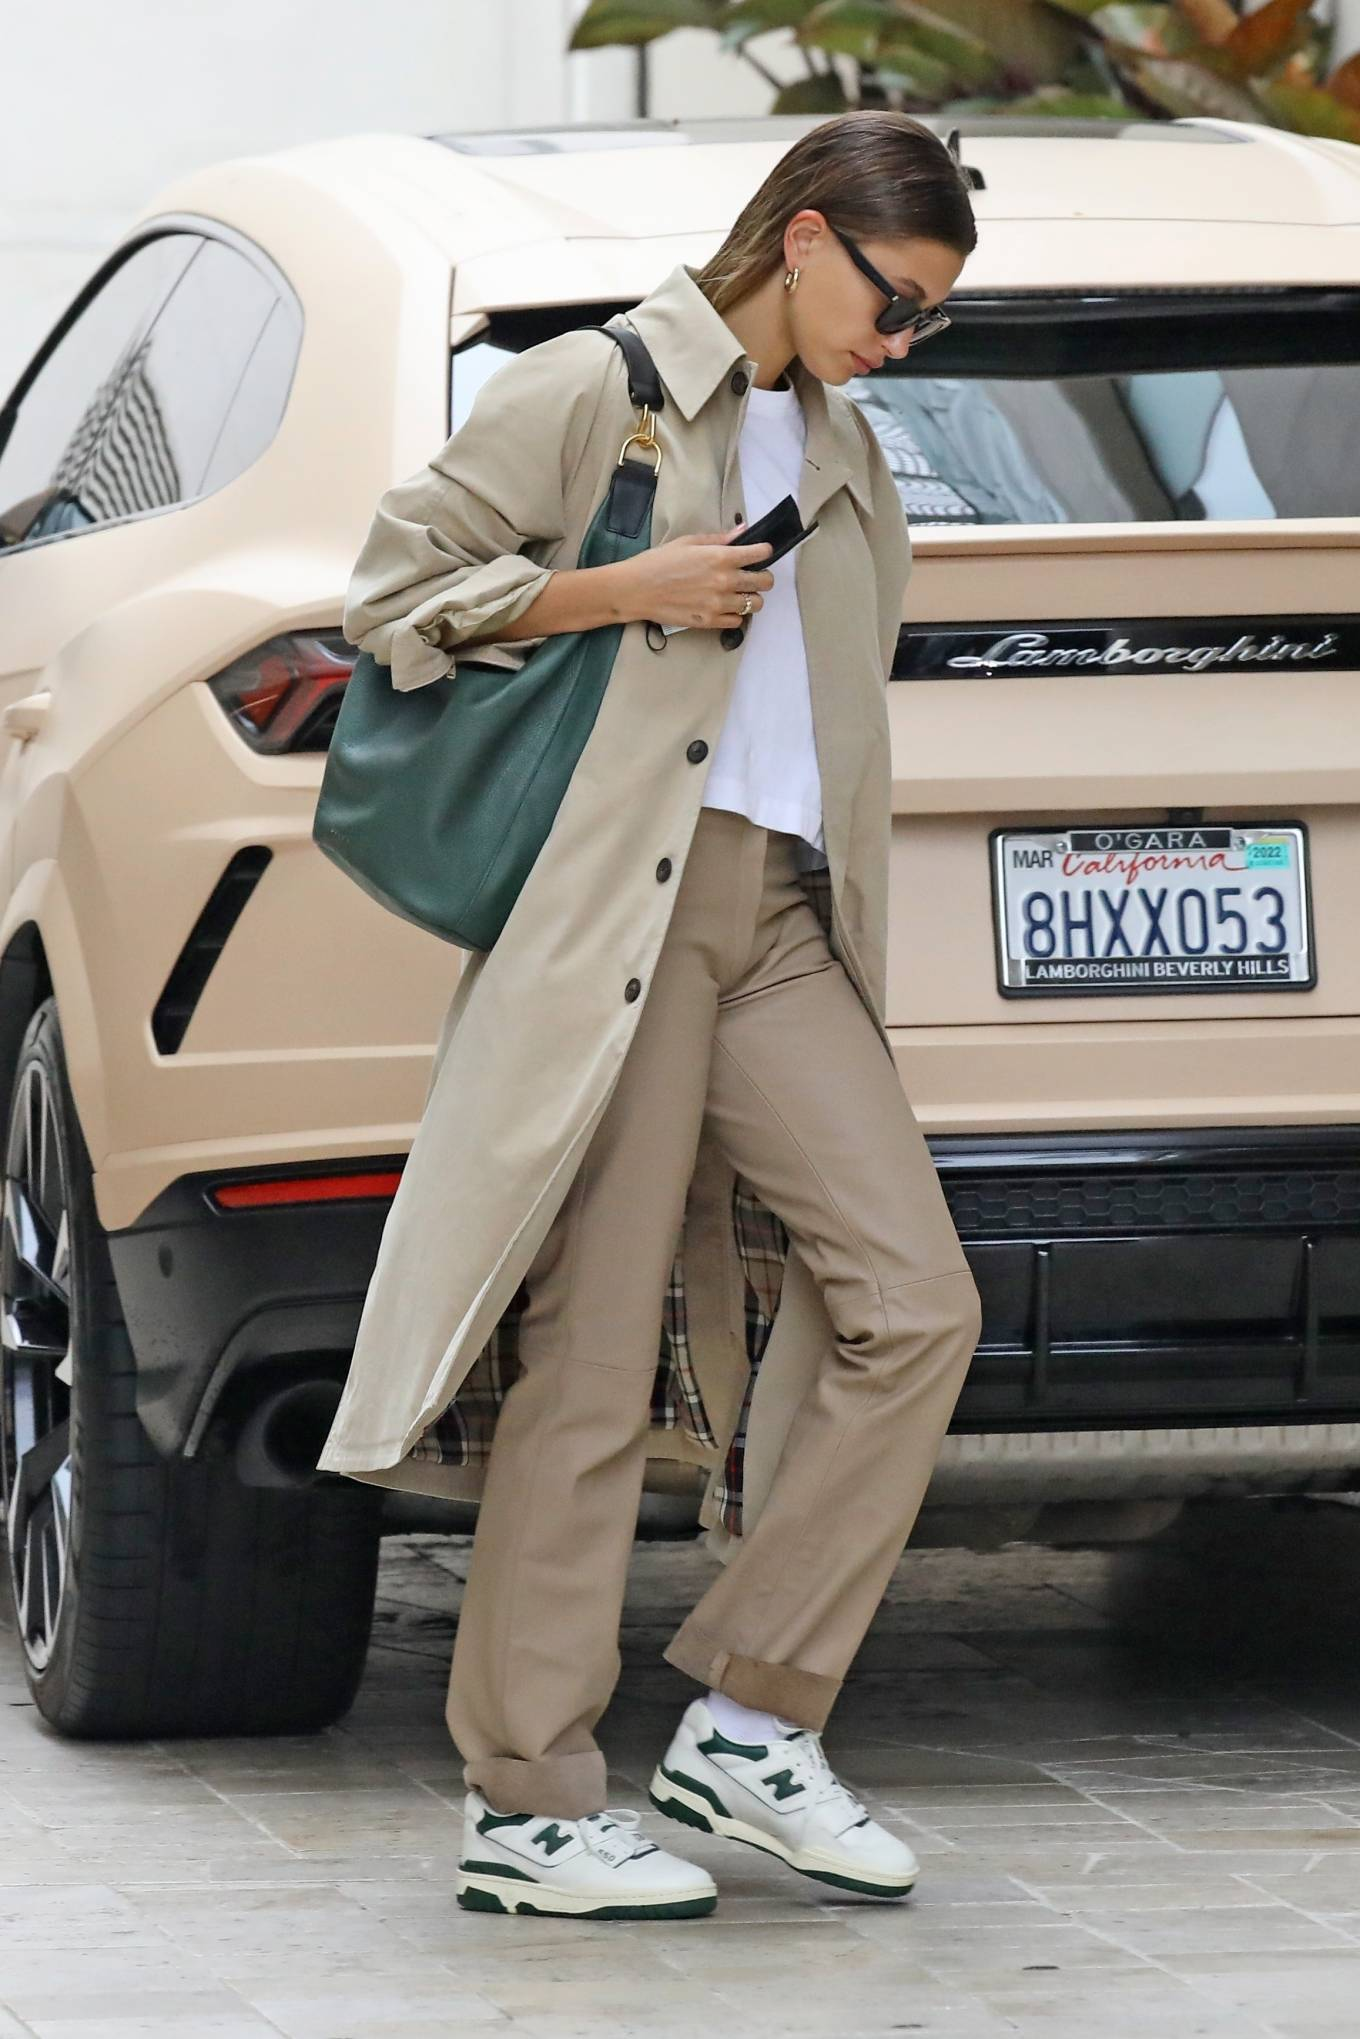 Hailey Baldwin, white sneakers, leather, New Balance sneakers, green shoulder bag, beige Balenciaga trench coat, round, lace-up, brand logo, green sneakers, black Saint Laurent sunglasses, white top, flat heel, beige trousers. Hailey Bieber wearing brand logo white green lace-up sneakers by New Balance with flat heel